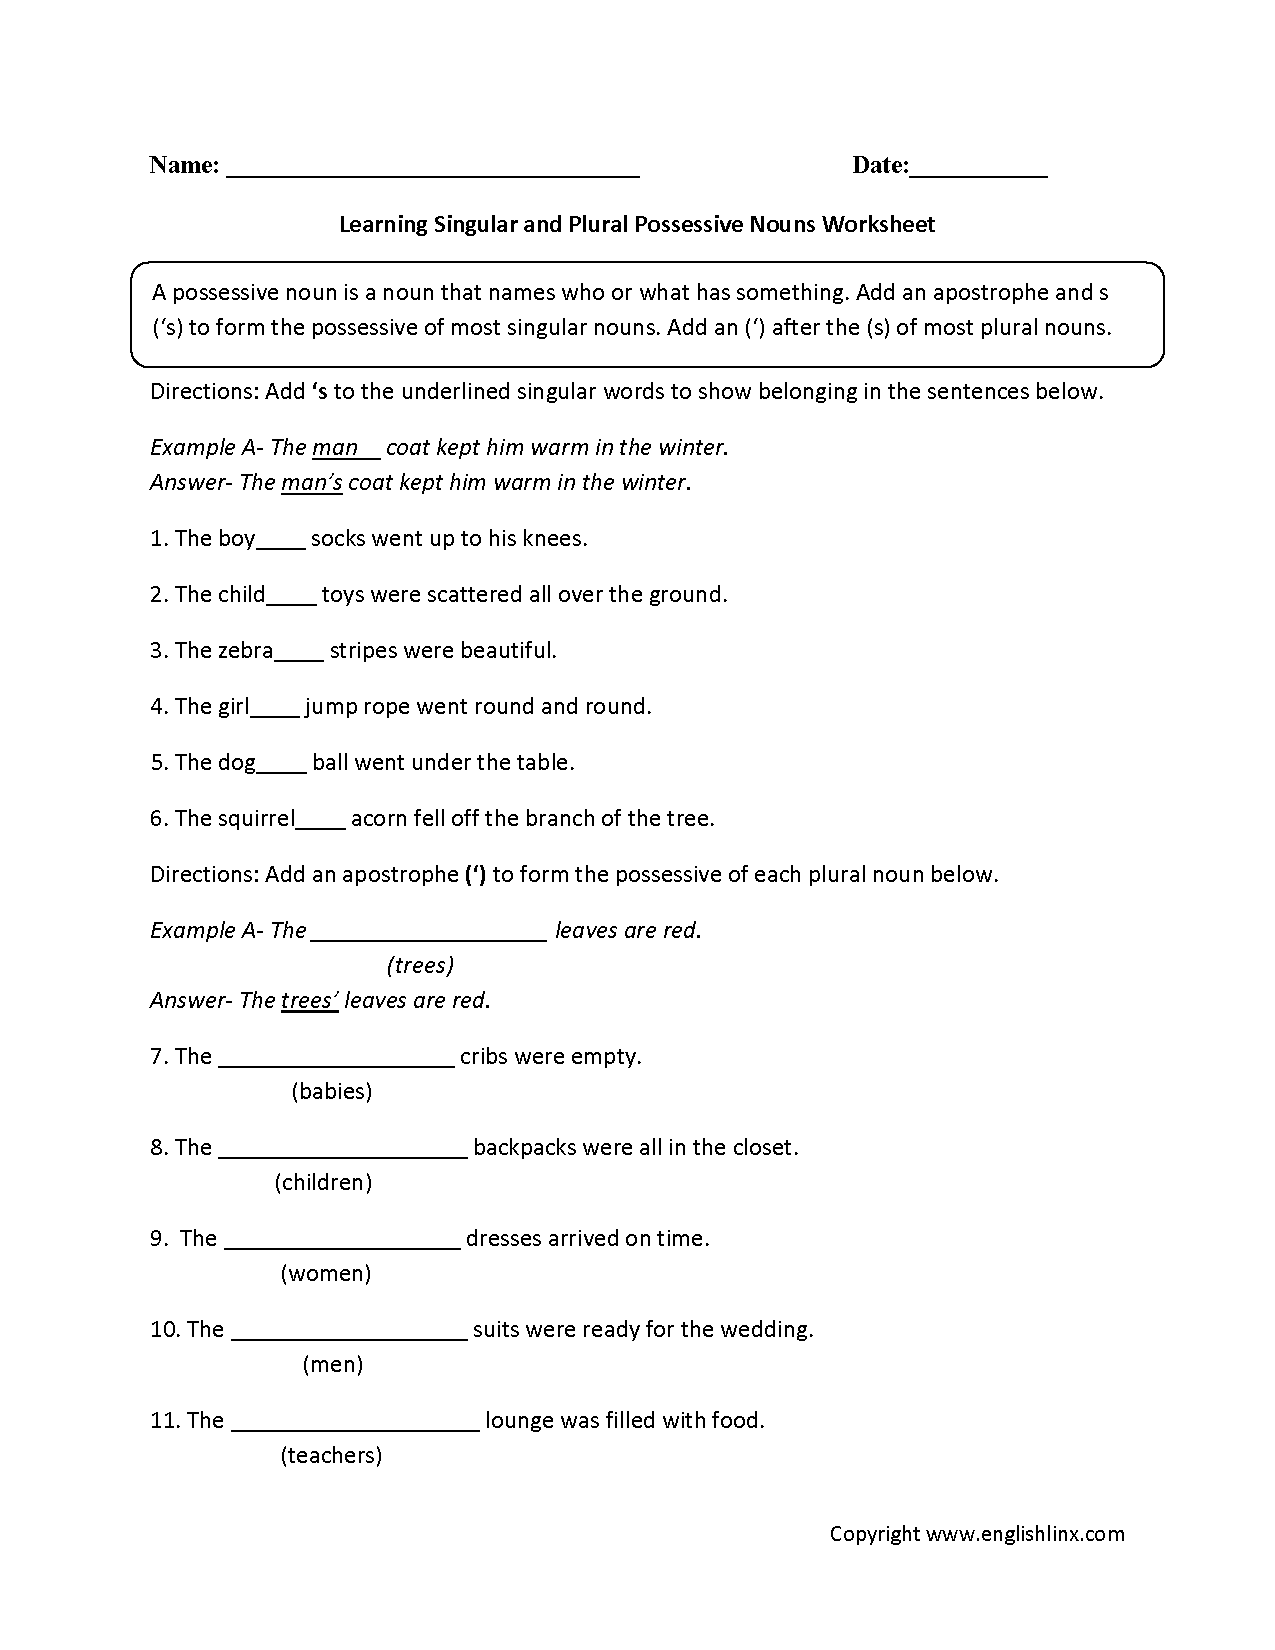 Nouns worksheets possessive nouns worksheets grades 9 12 possessive nouns worksheets robcynllc Gallery